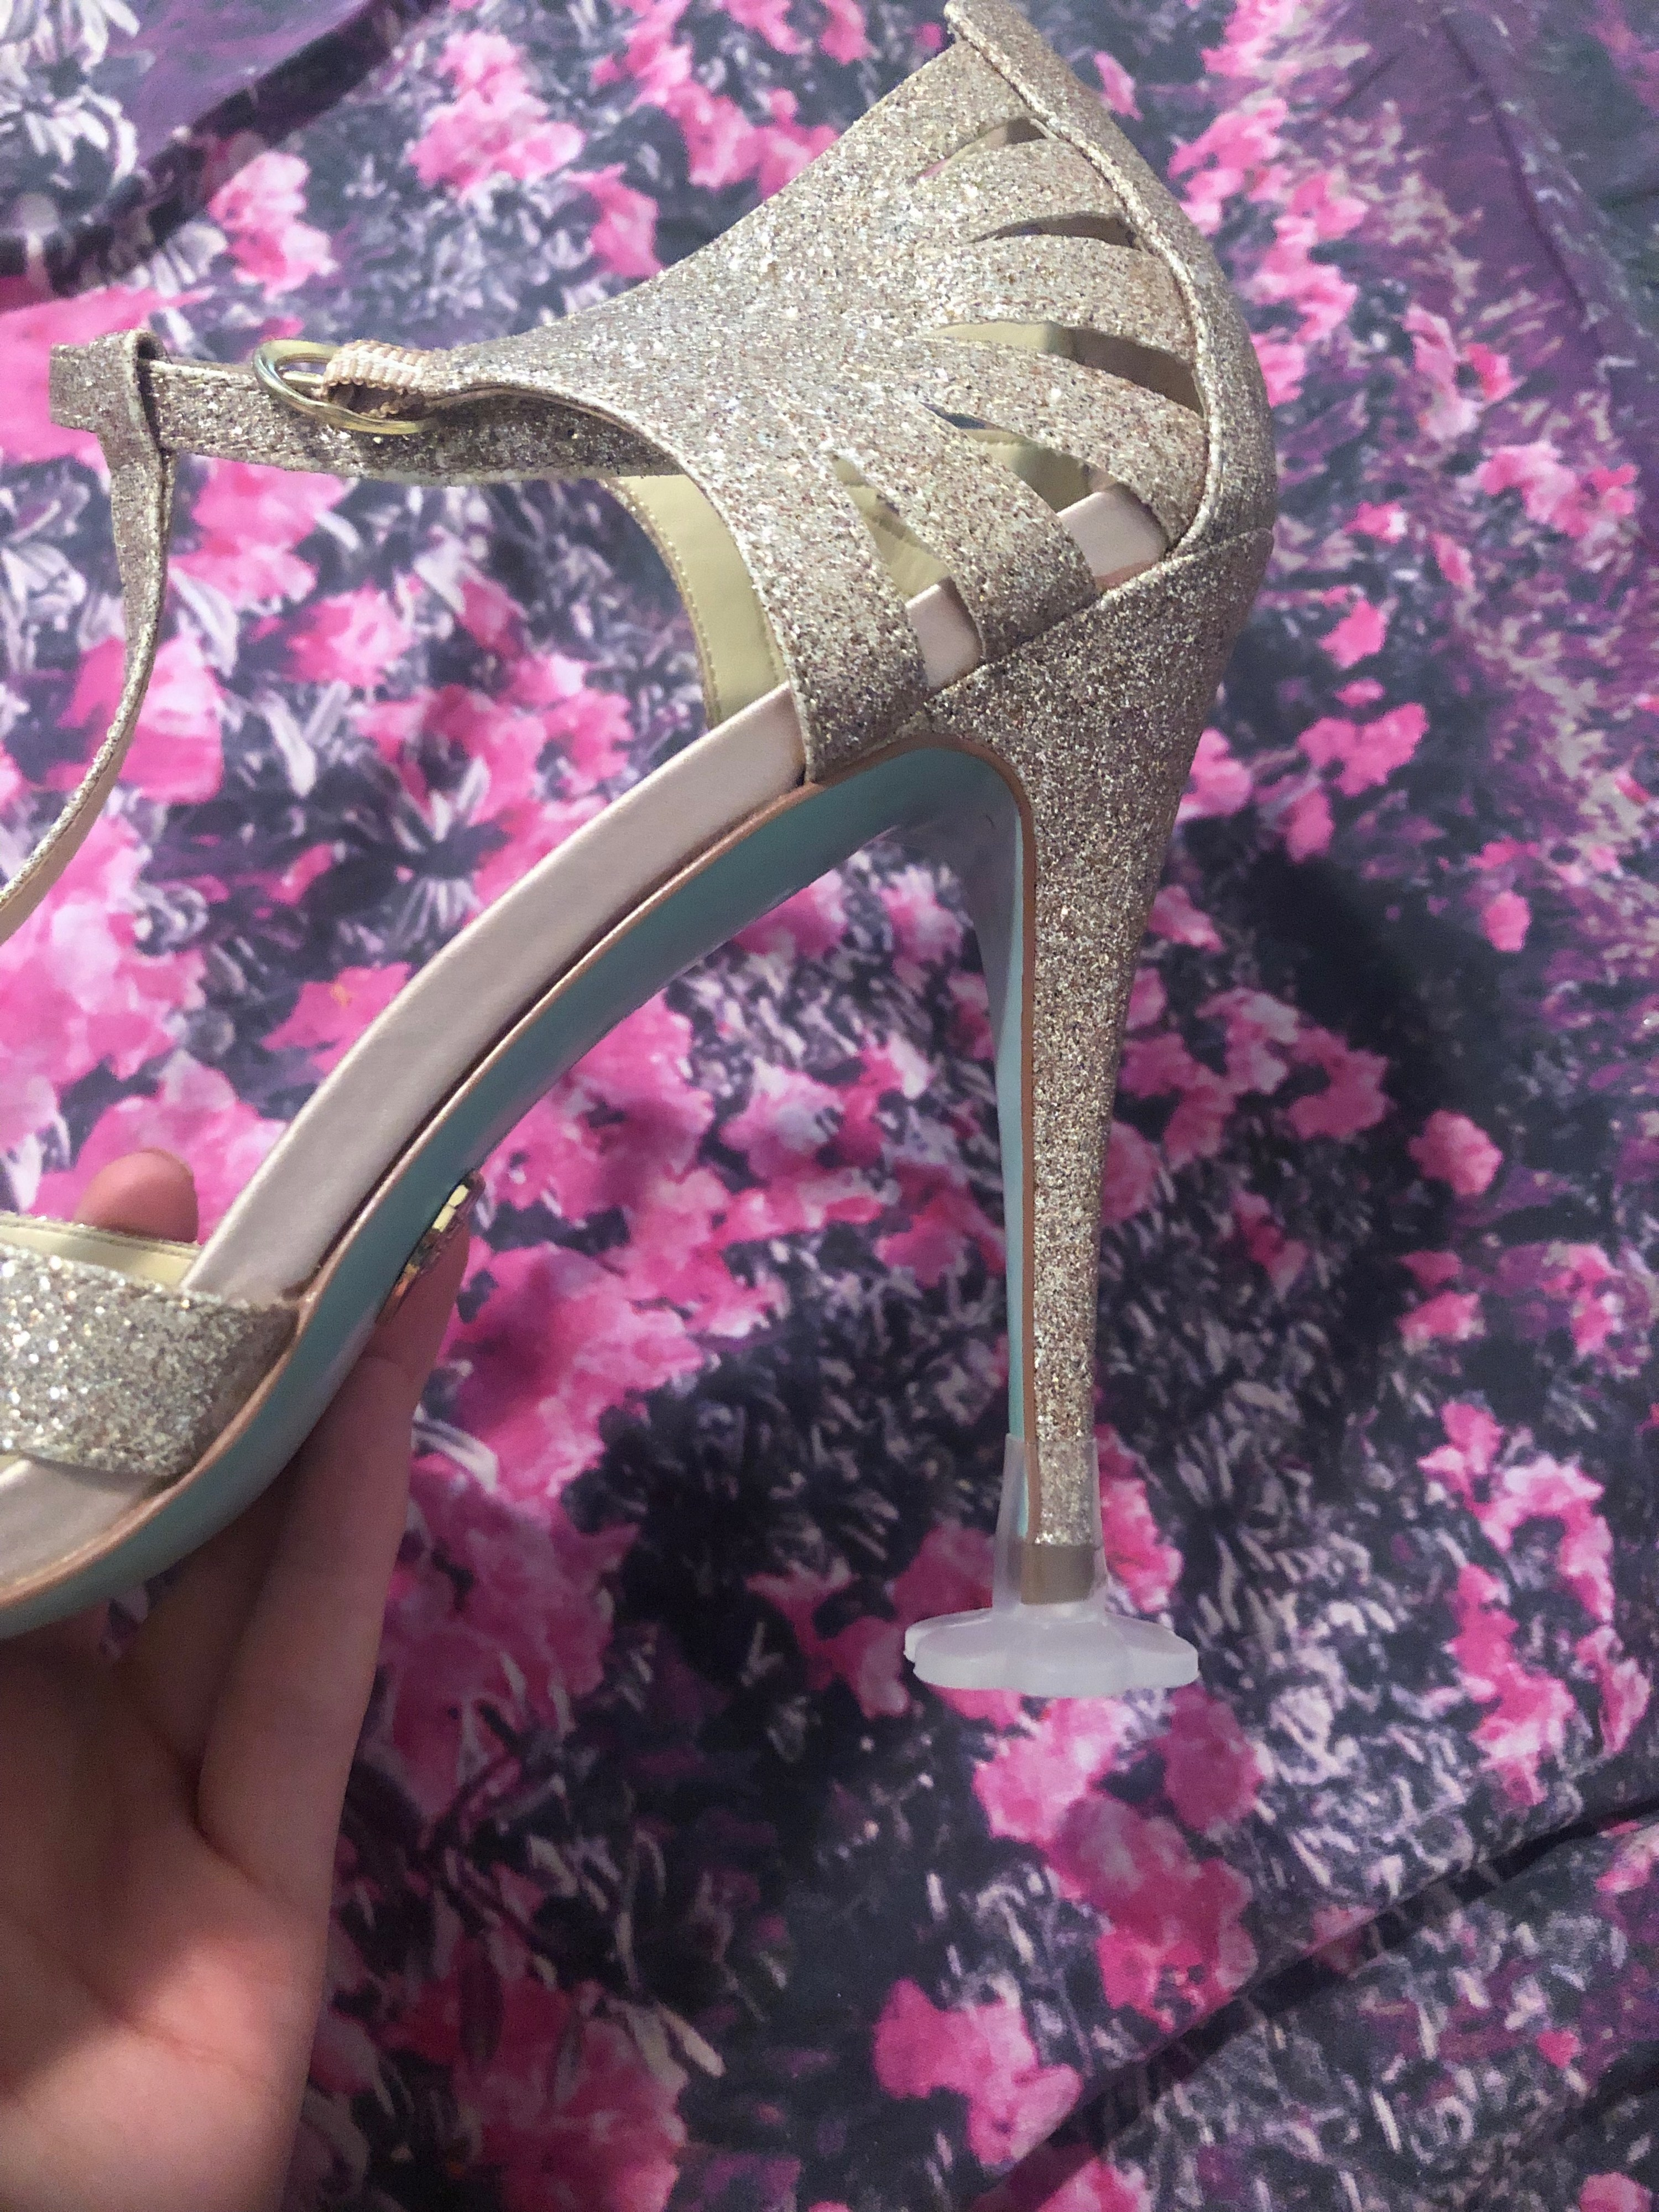 BuzzFeed editor Elizabeth Lilly's wedding heel with a heel stoppers on the bottom that offers a clear, circular landing for her shoe